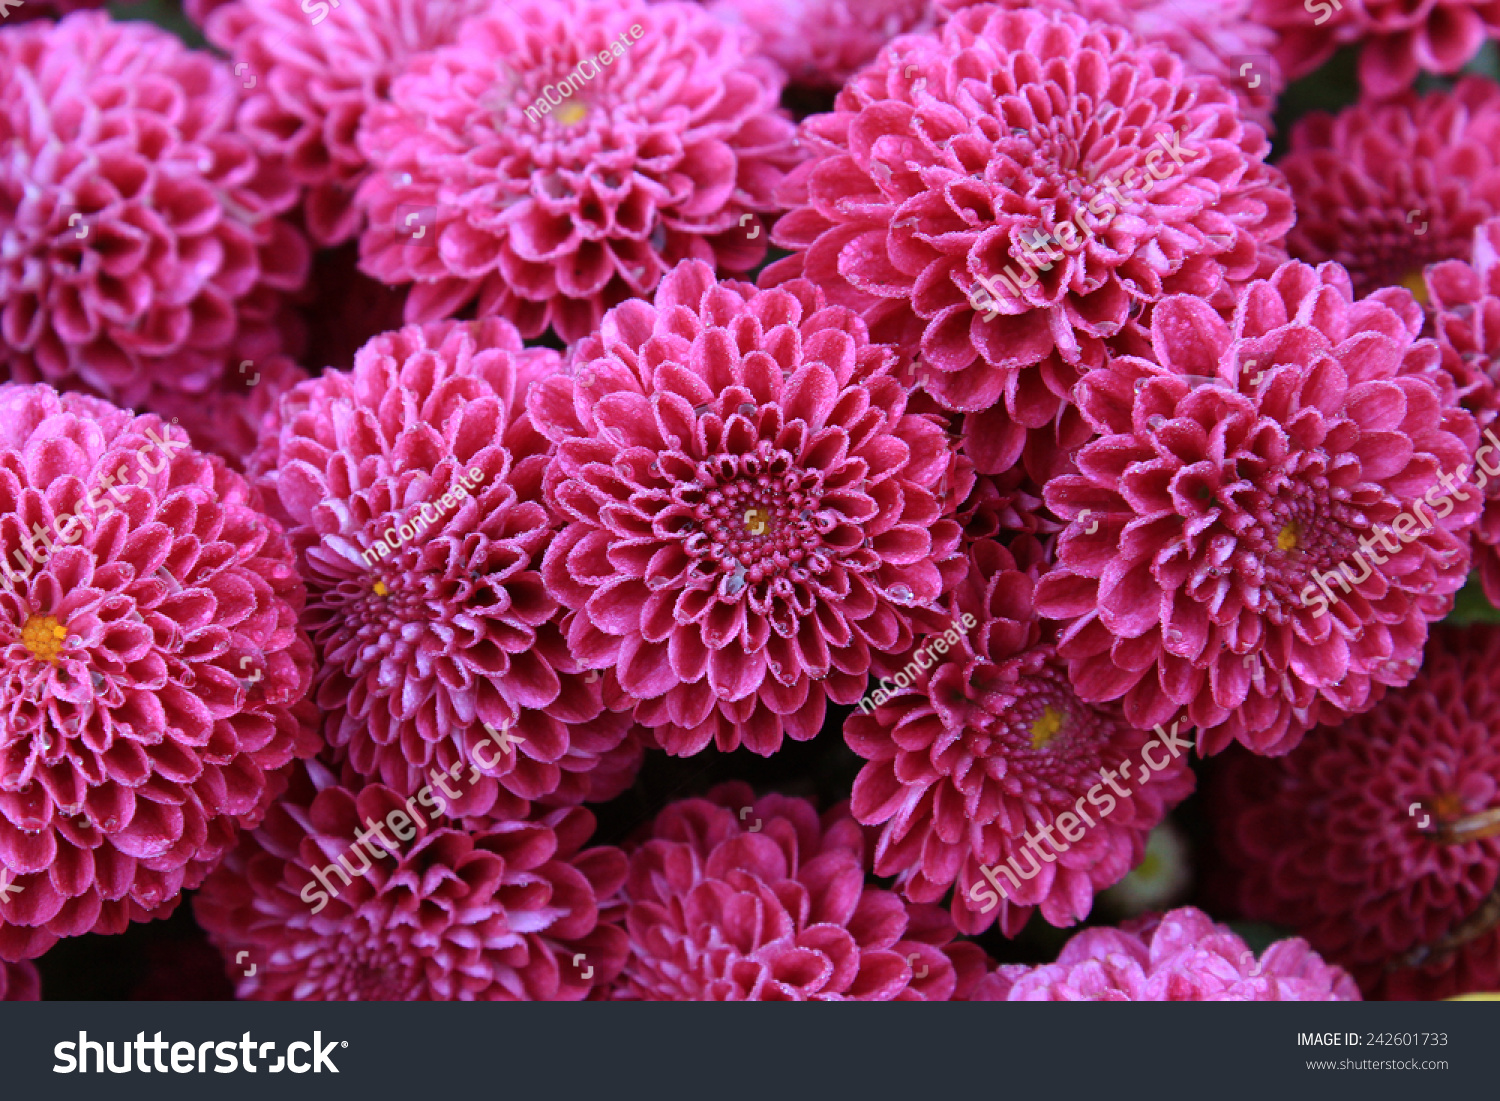 Dahlia flowers abstract background dahlia flowers stock photo edit dahlia flowers abstract background of dahlia flowers beautiful dahlia flowers with water droplets izmirmasajfo